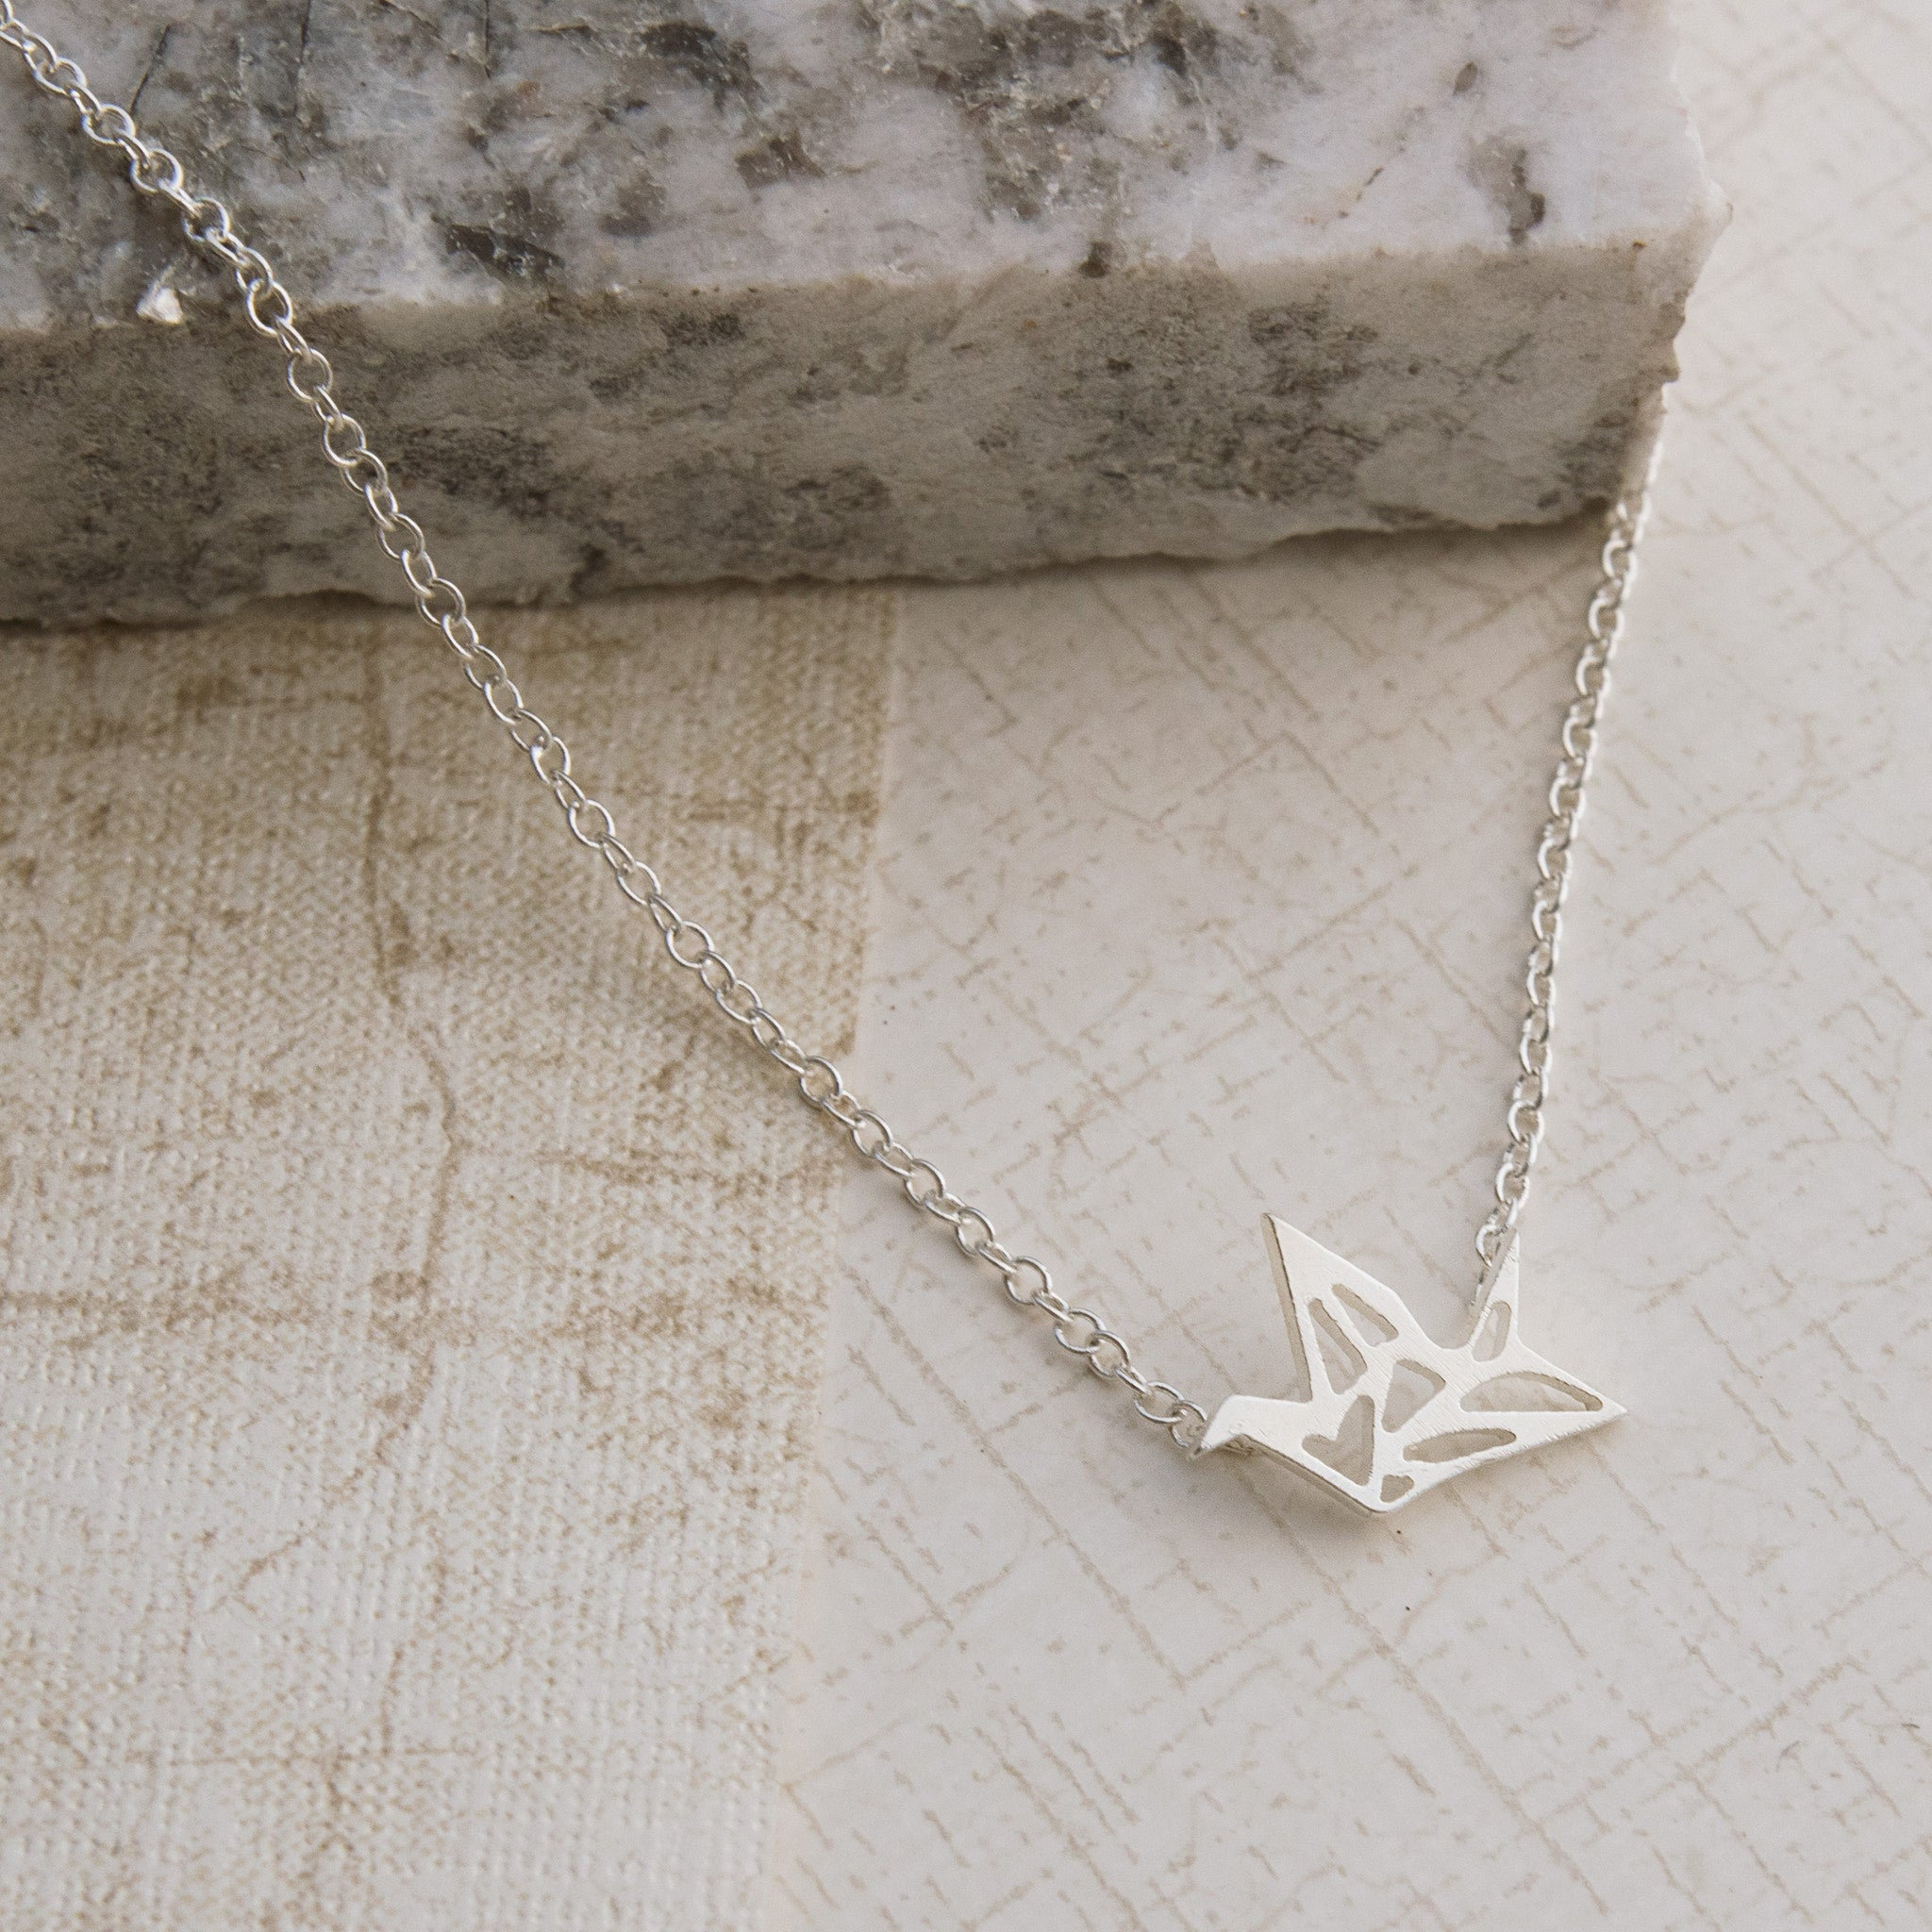 Origami Crane Silver Necklace